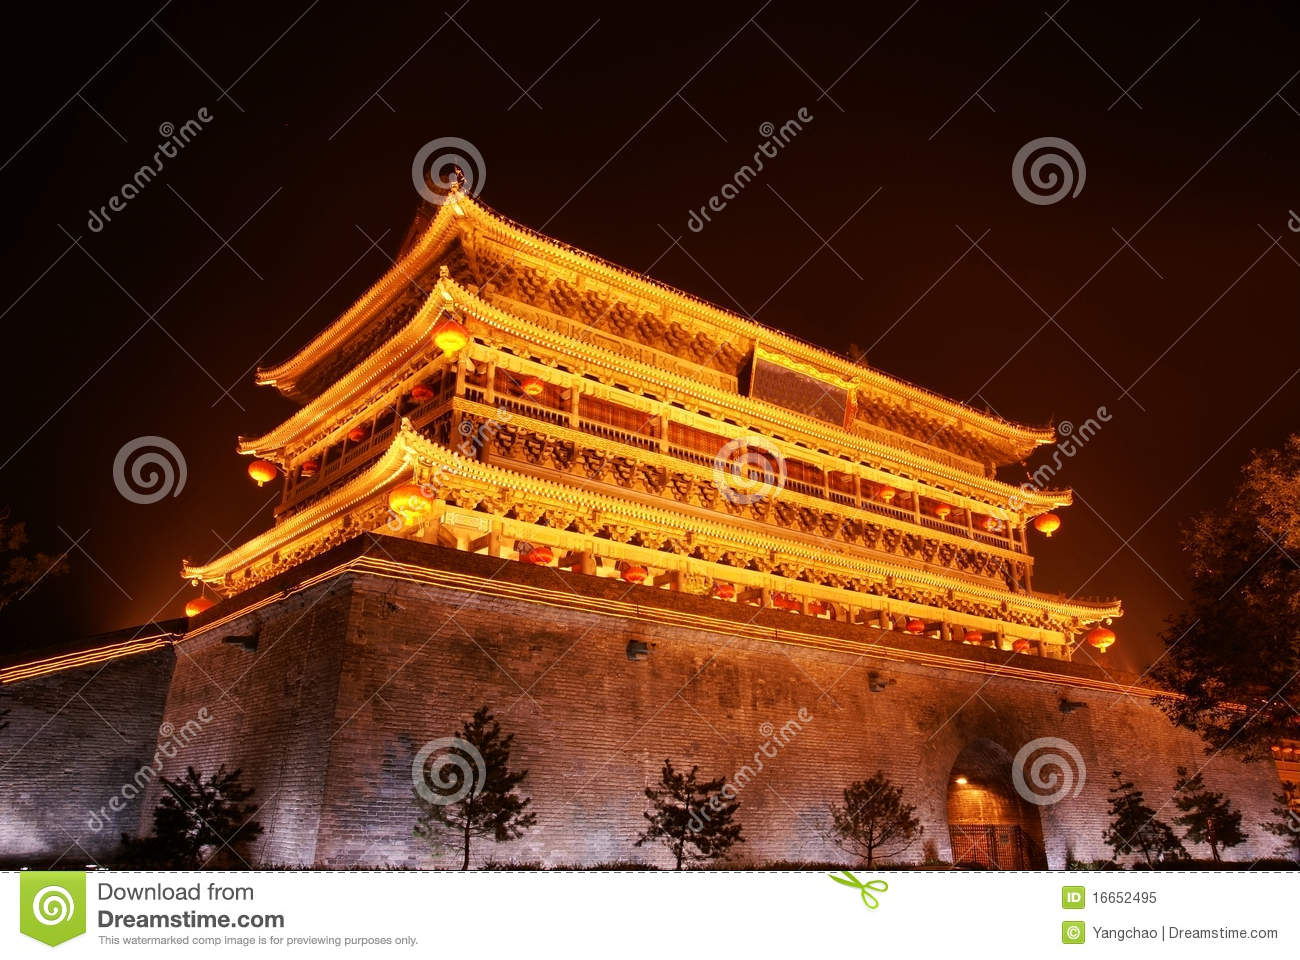 Drum tower in xi an of china